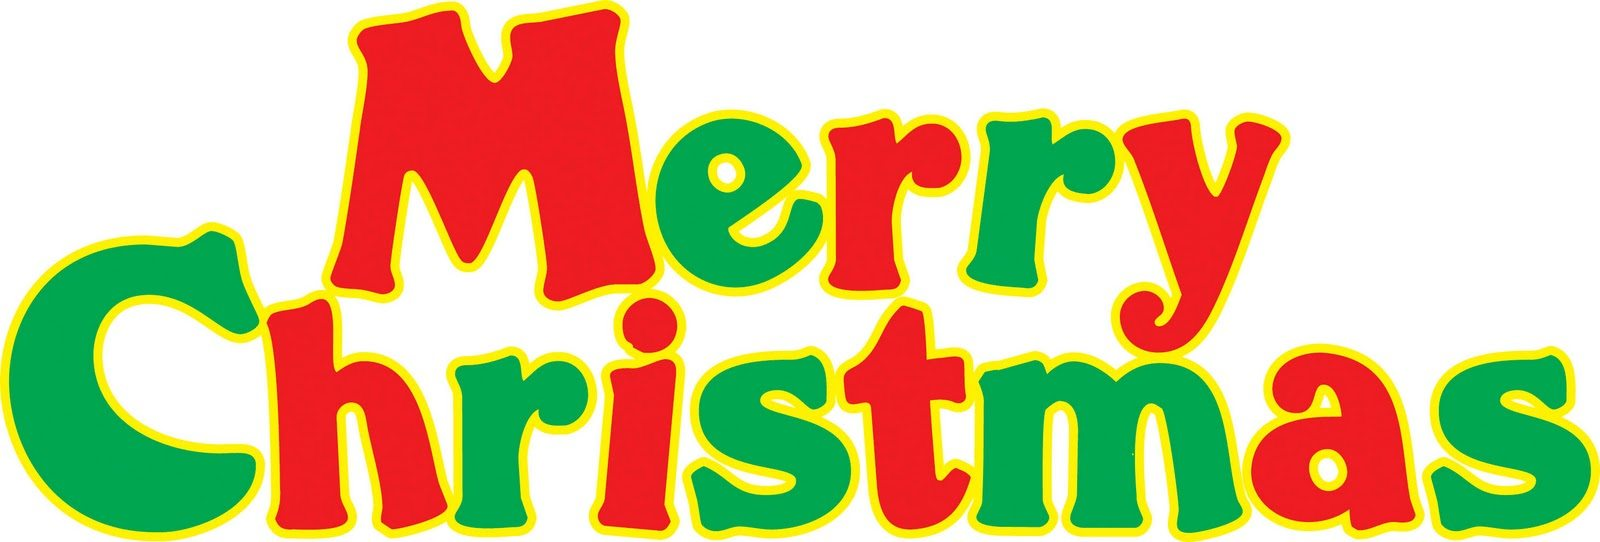 Merry-Christmas-Clip-Art-12